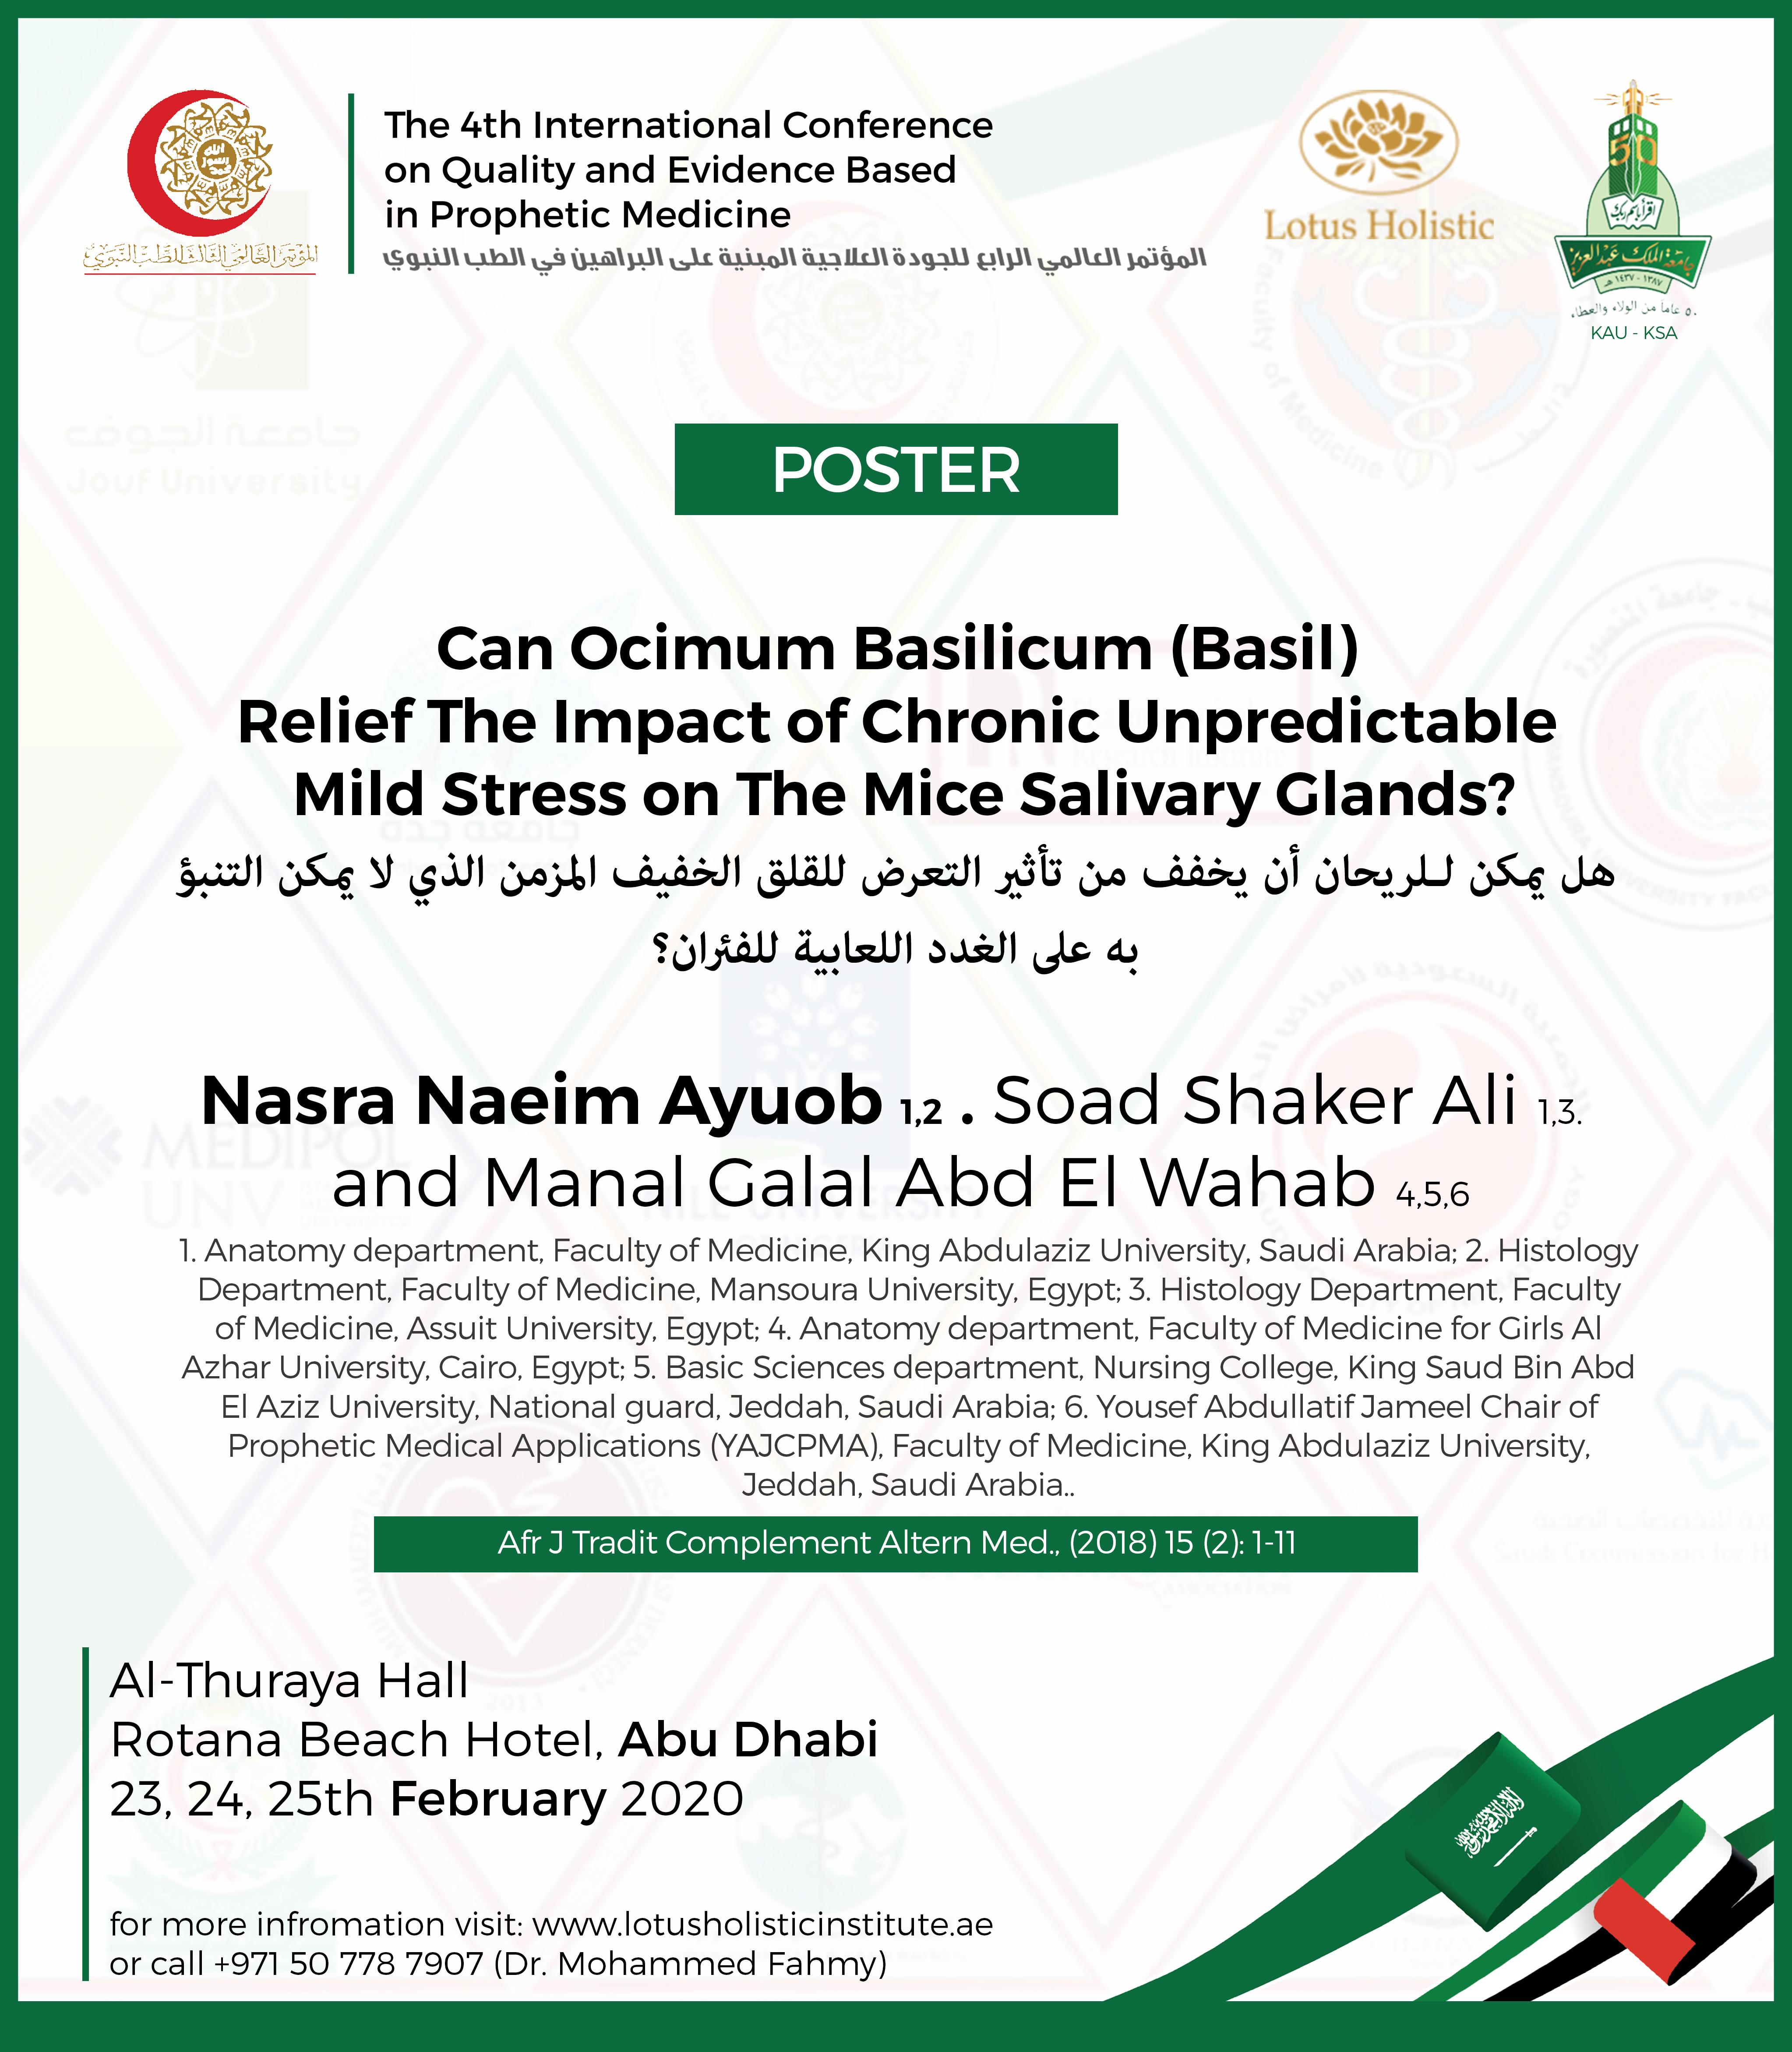 POSTER SESSION 03